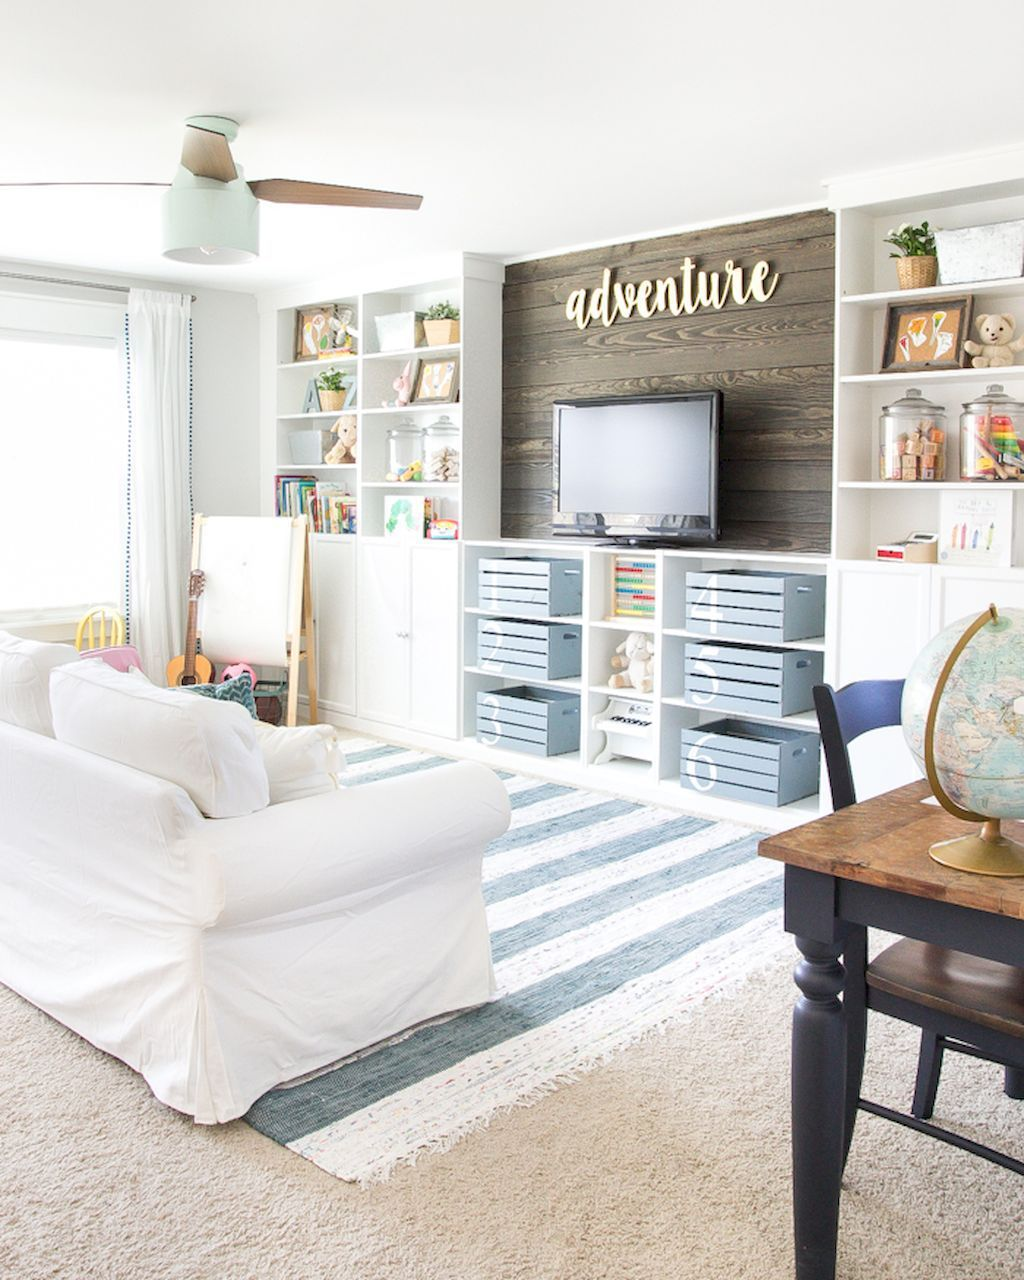 Basement Playroom Decorating Ideas (36)   Our White House   Sunroom